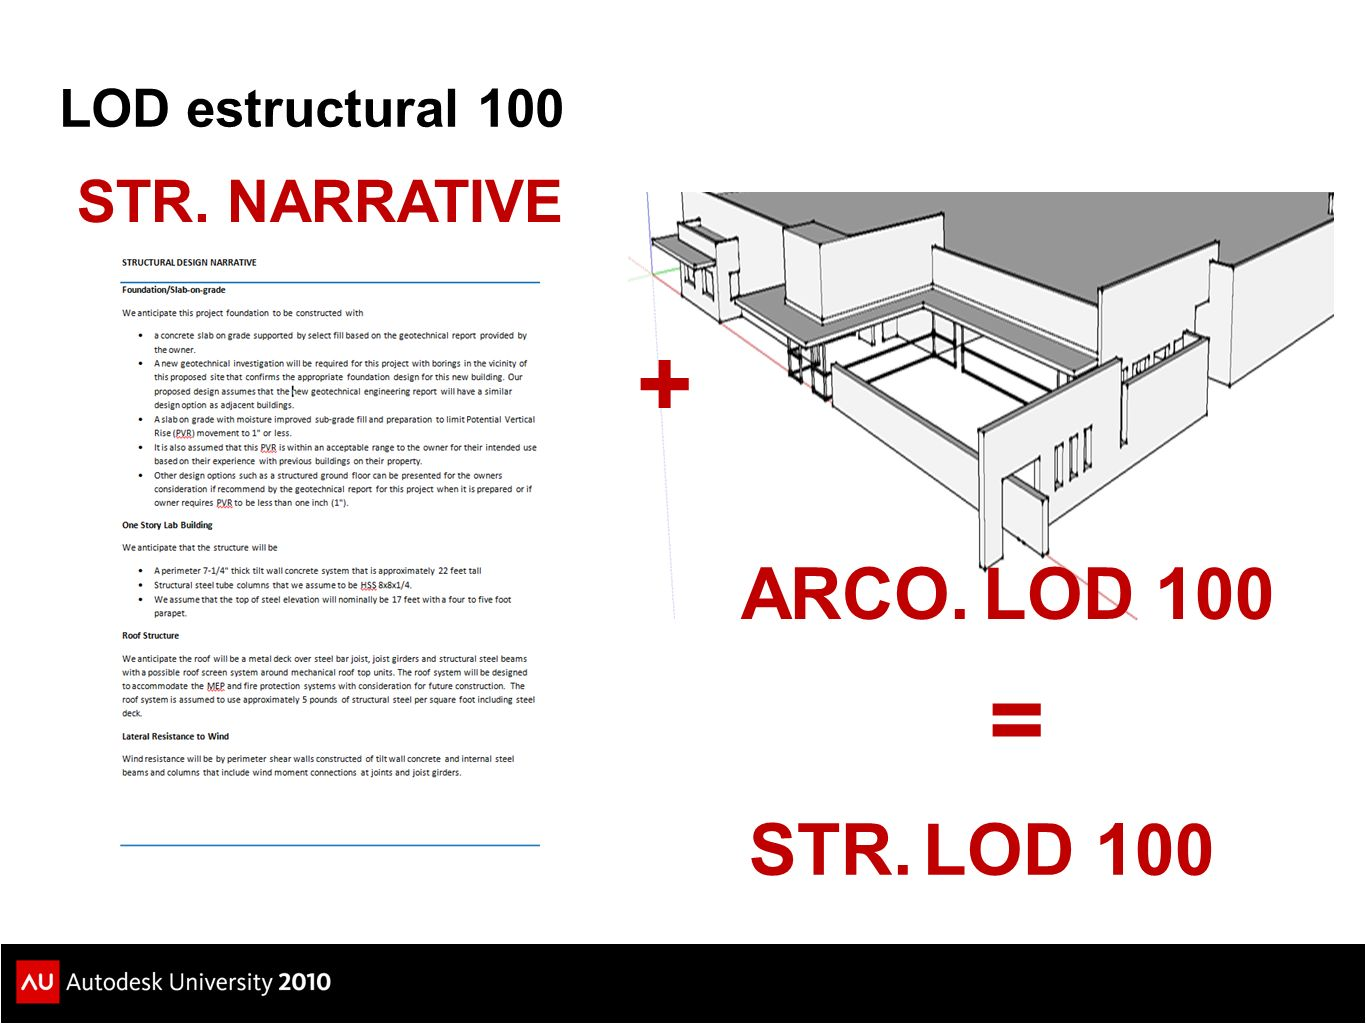 LOD estructural 100 STR. NARRATIVE + ARCO. LOD 100 = STR. LOD 100